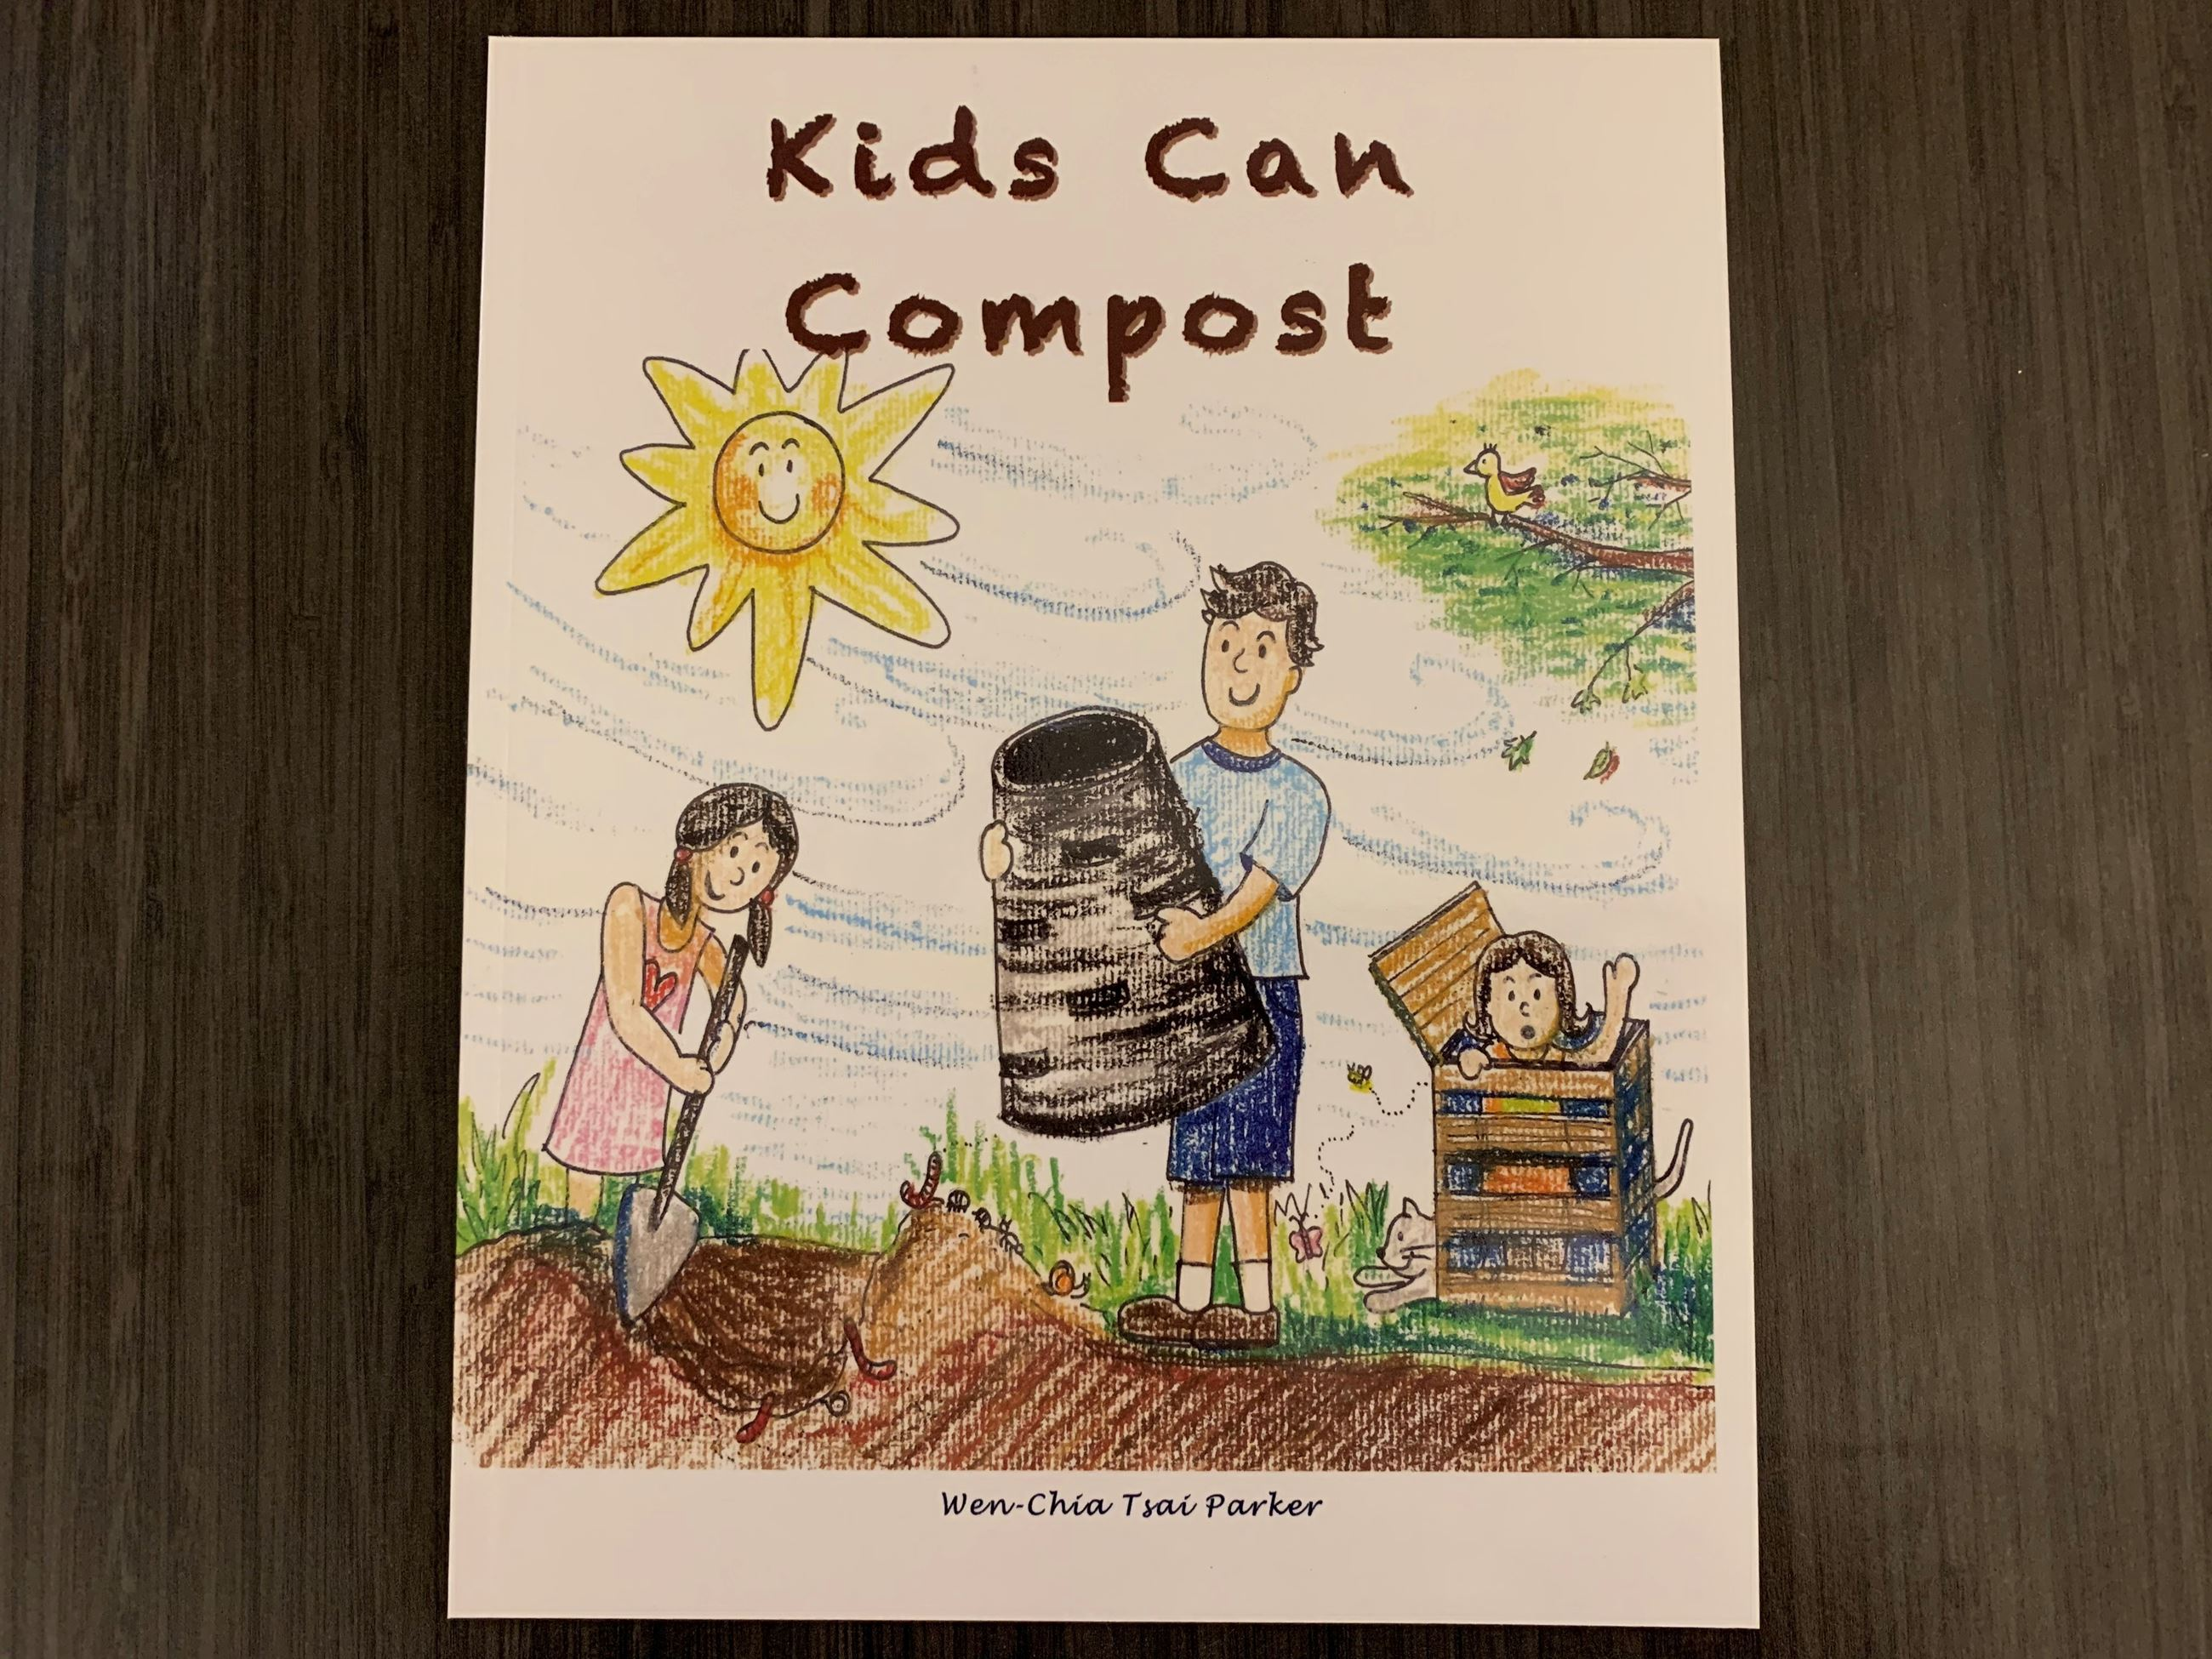 Book 8 - Kids Can Compost